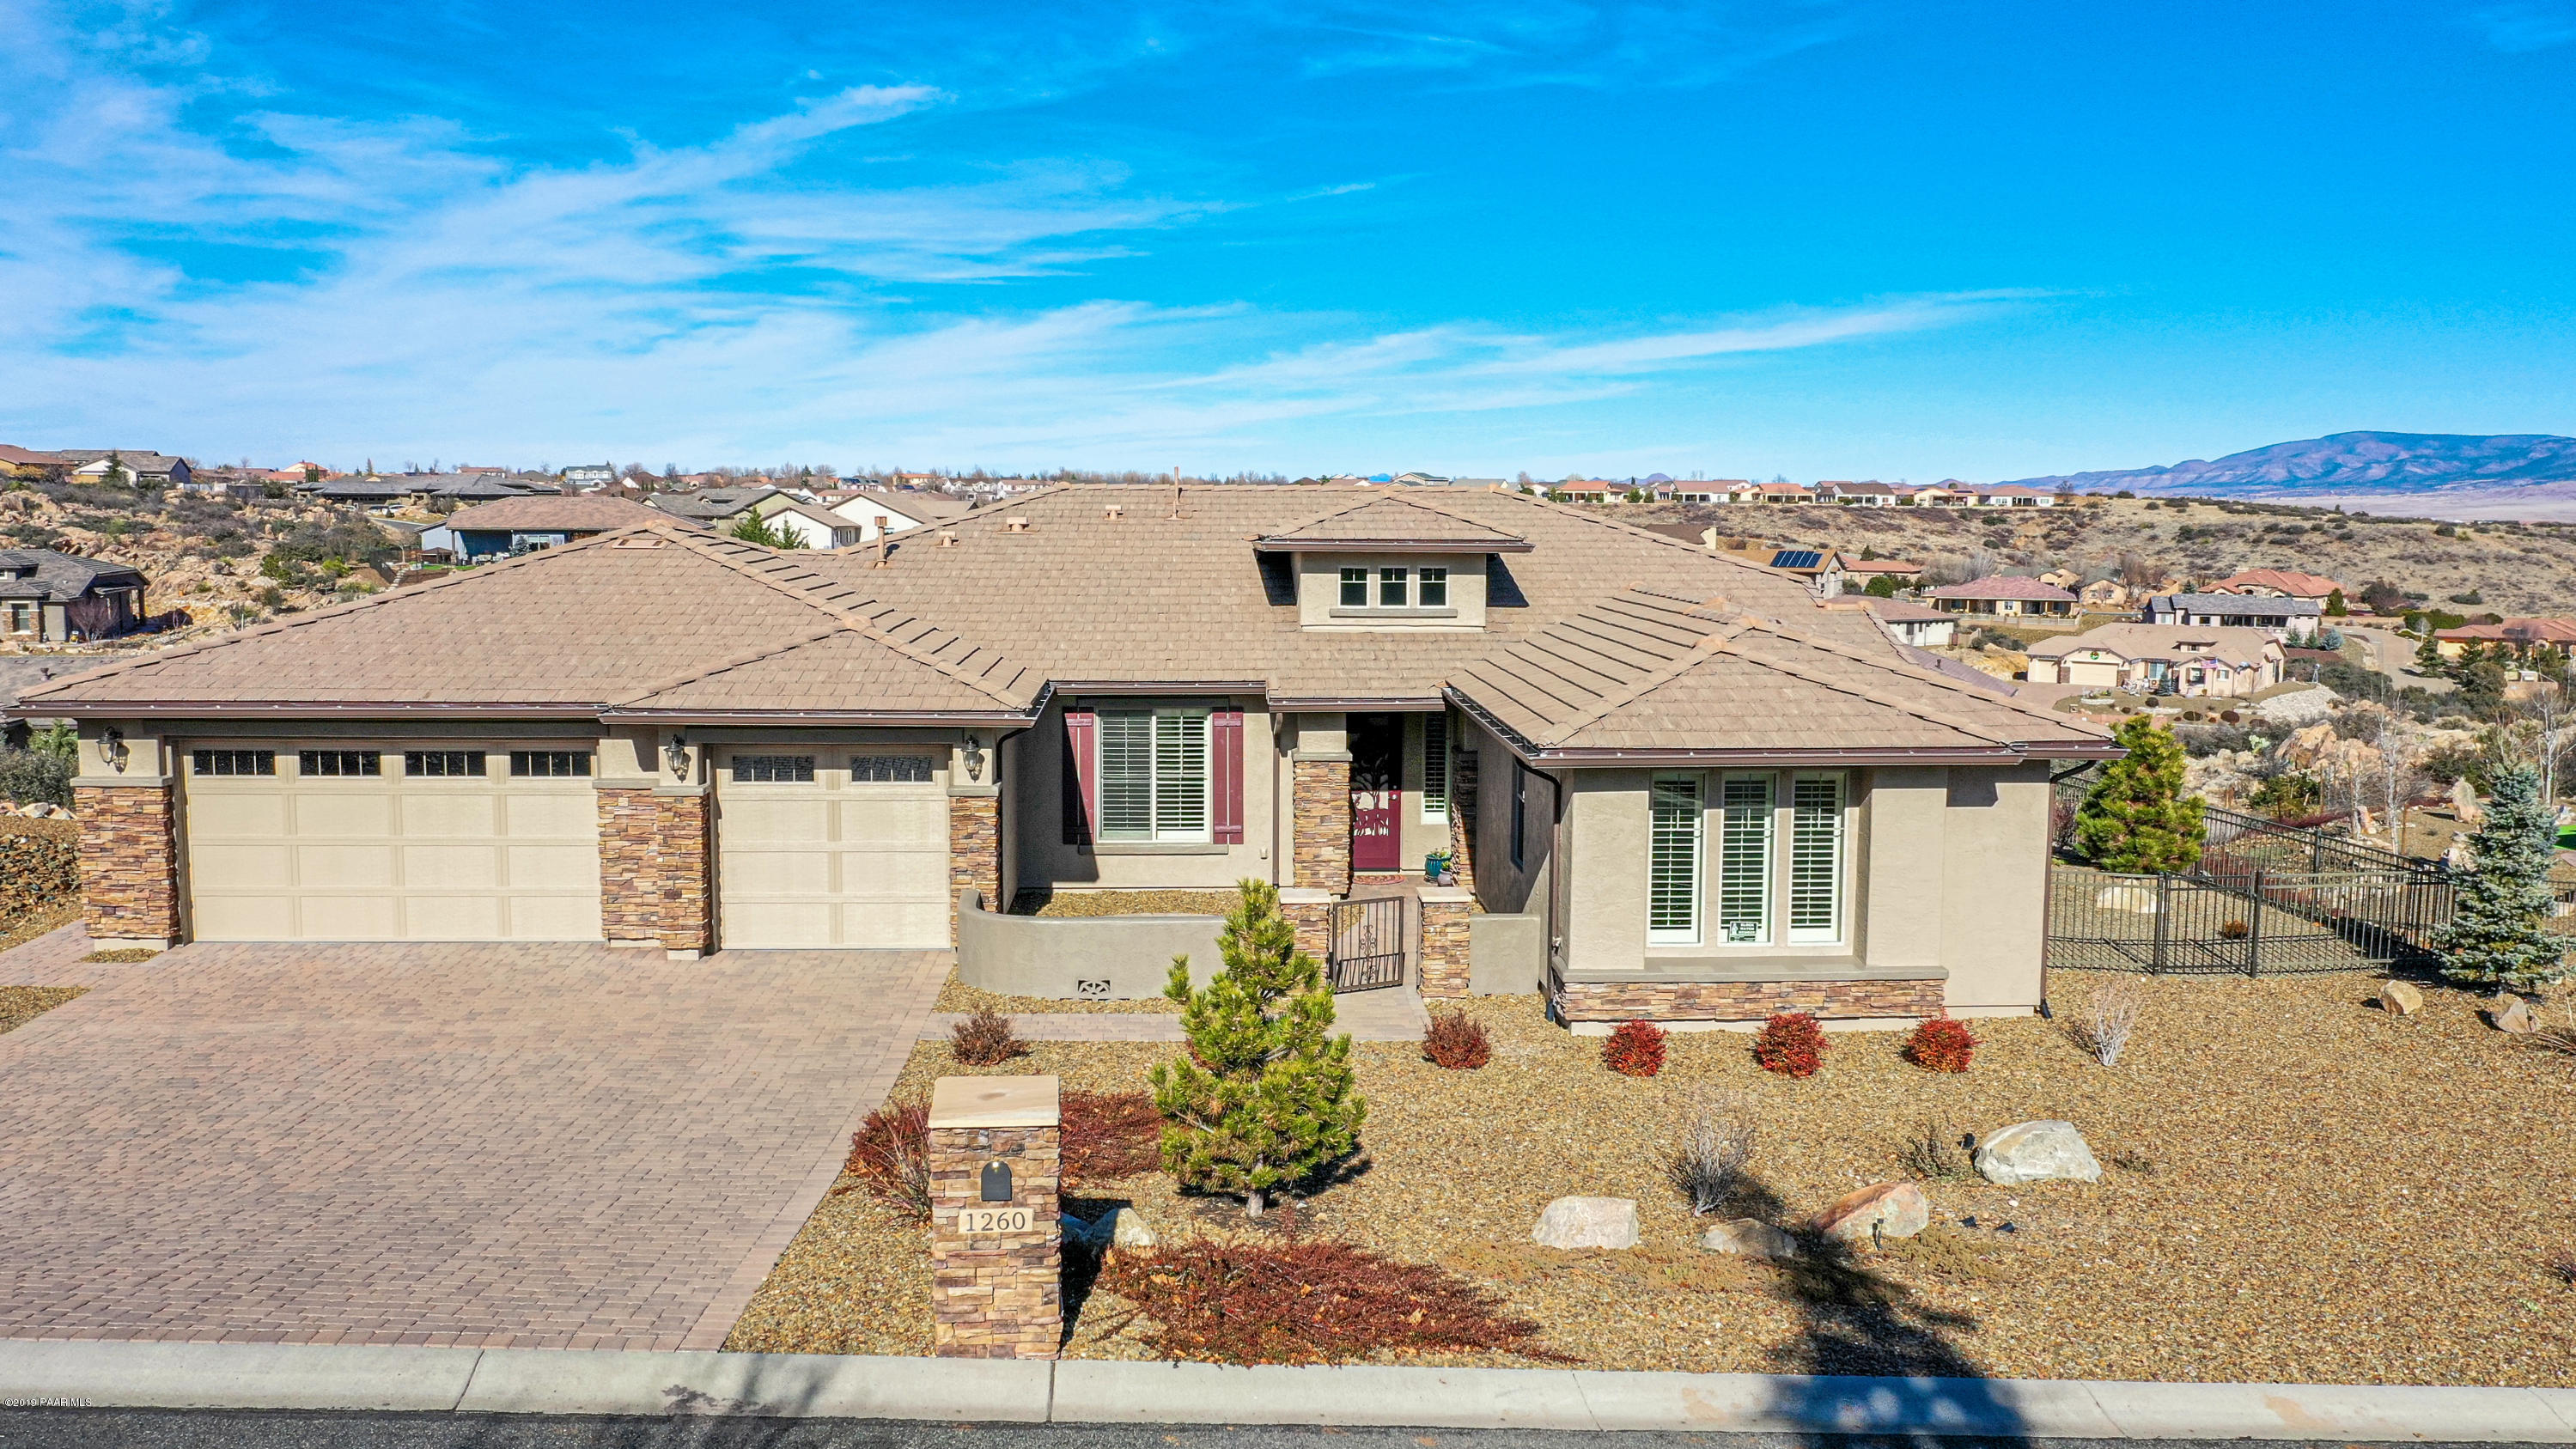 1260 N Wide Open Trail 86314 - One of Prescott Valley Homes for Sale